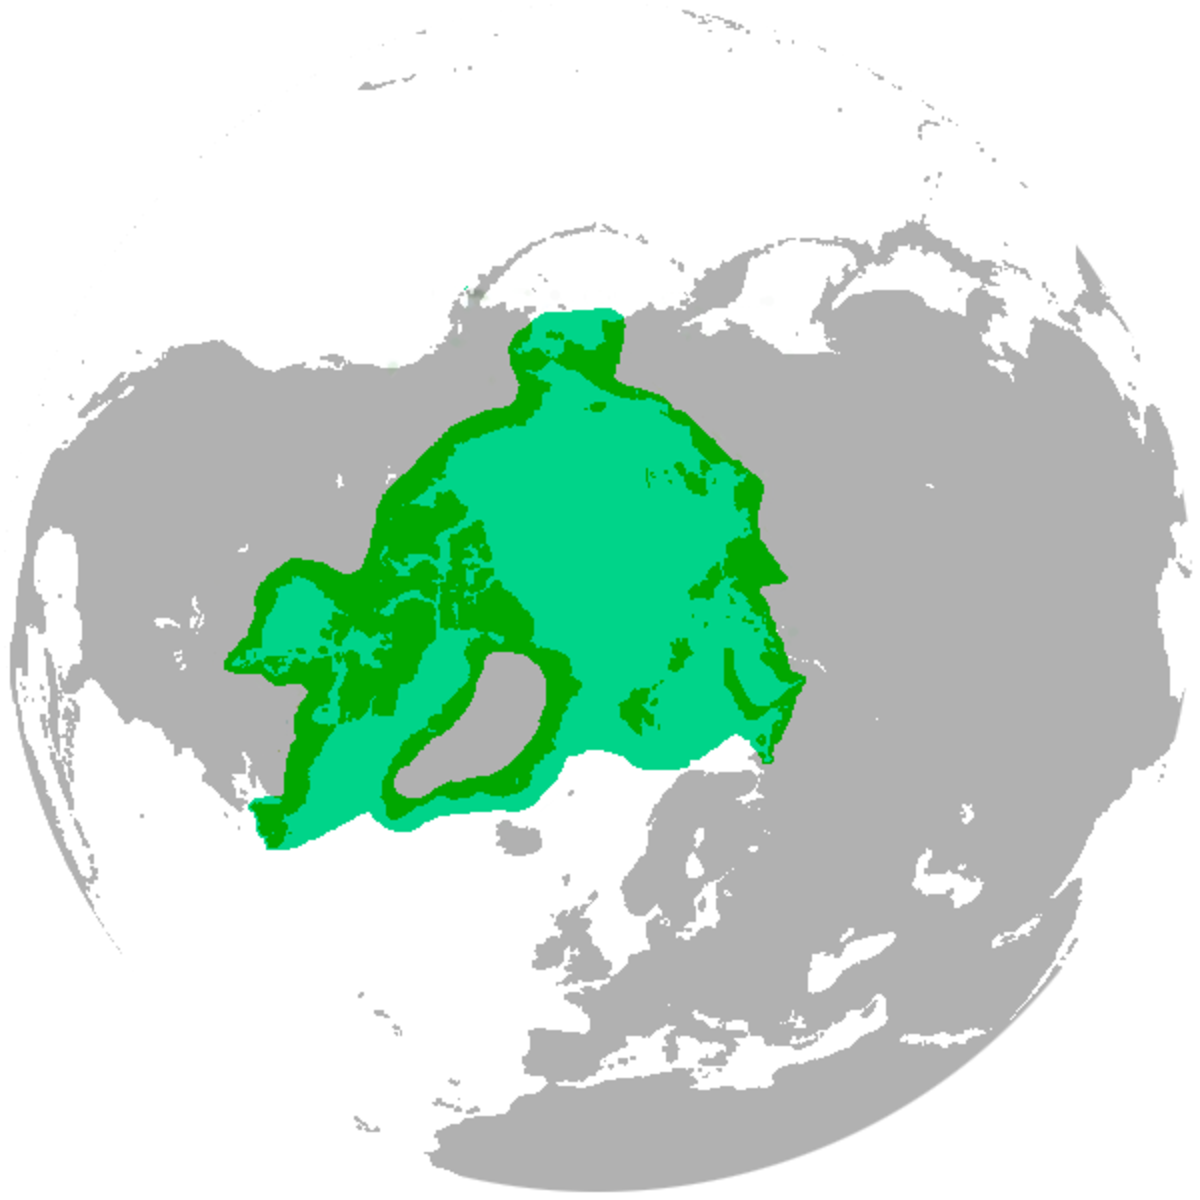 Polar bears live in the Arctic Circle - Canada, Russia, Alaska, Greenland, and Norway.